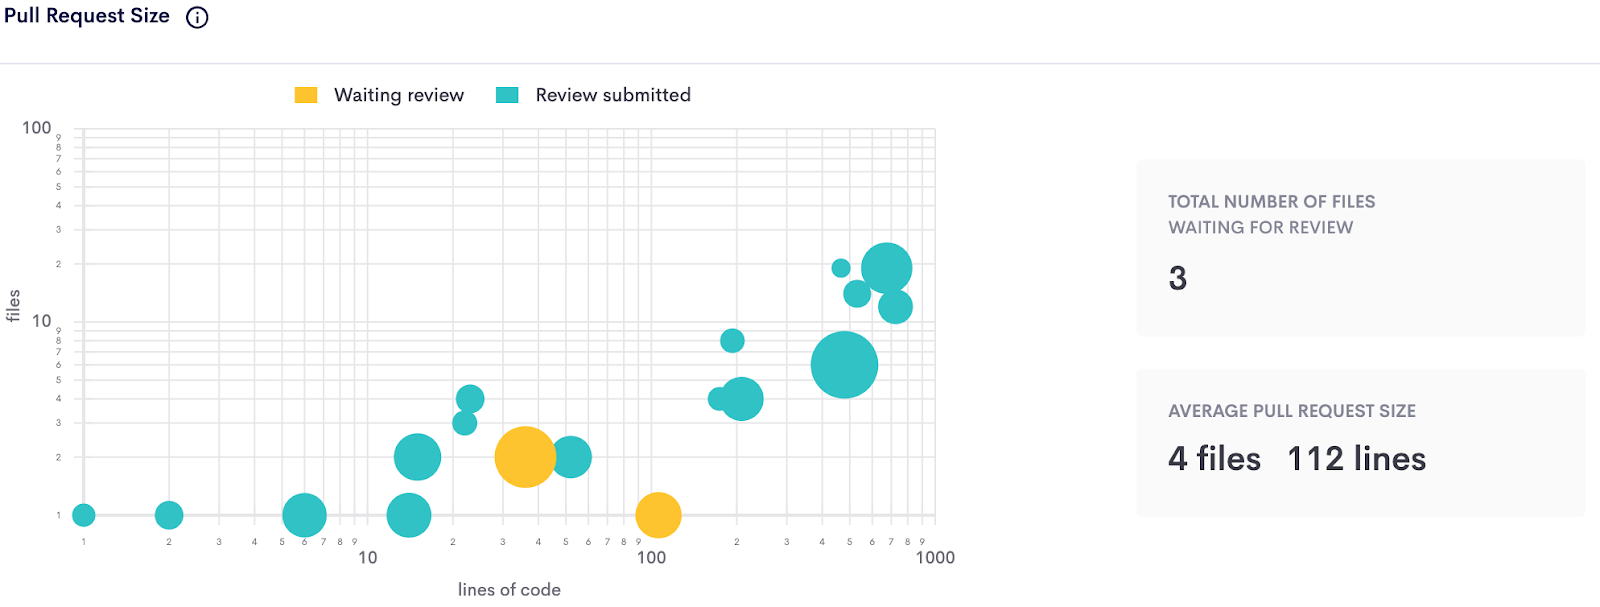 A screenshot of the Pull Request Size chart in Athenian's Engineering Metrics Dashboard.